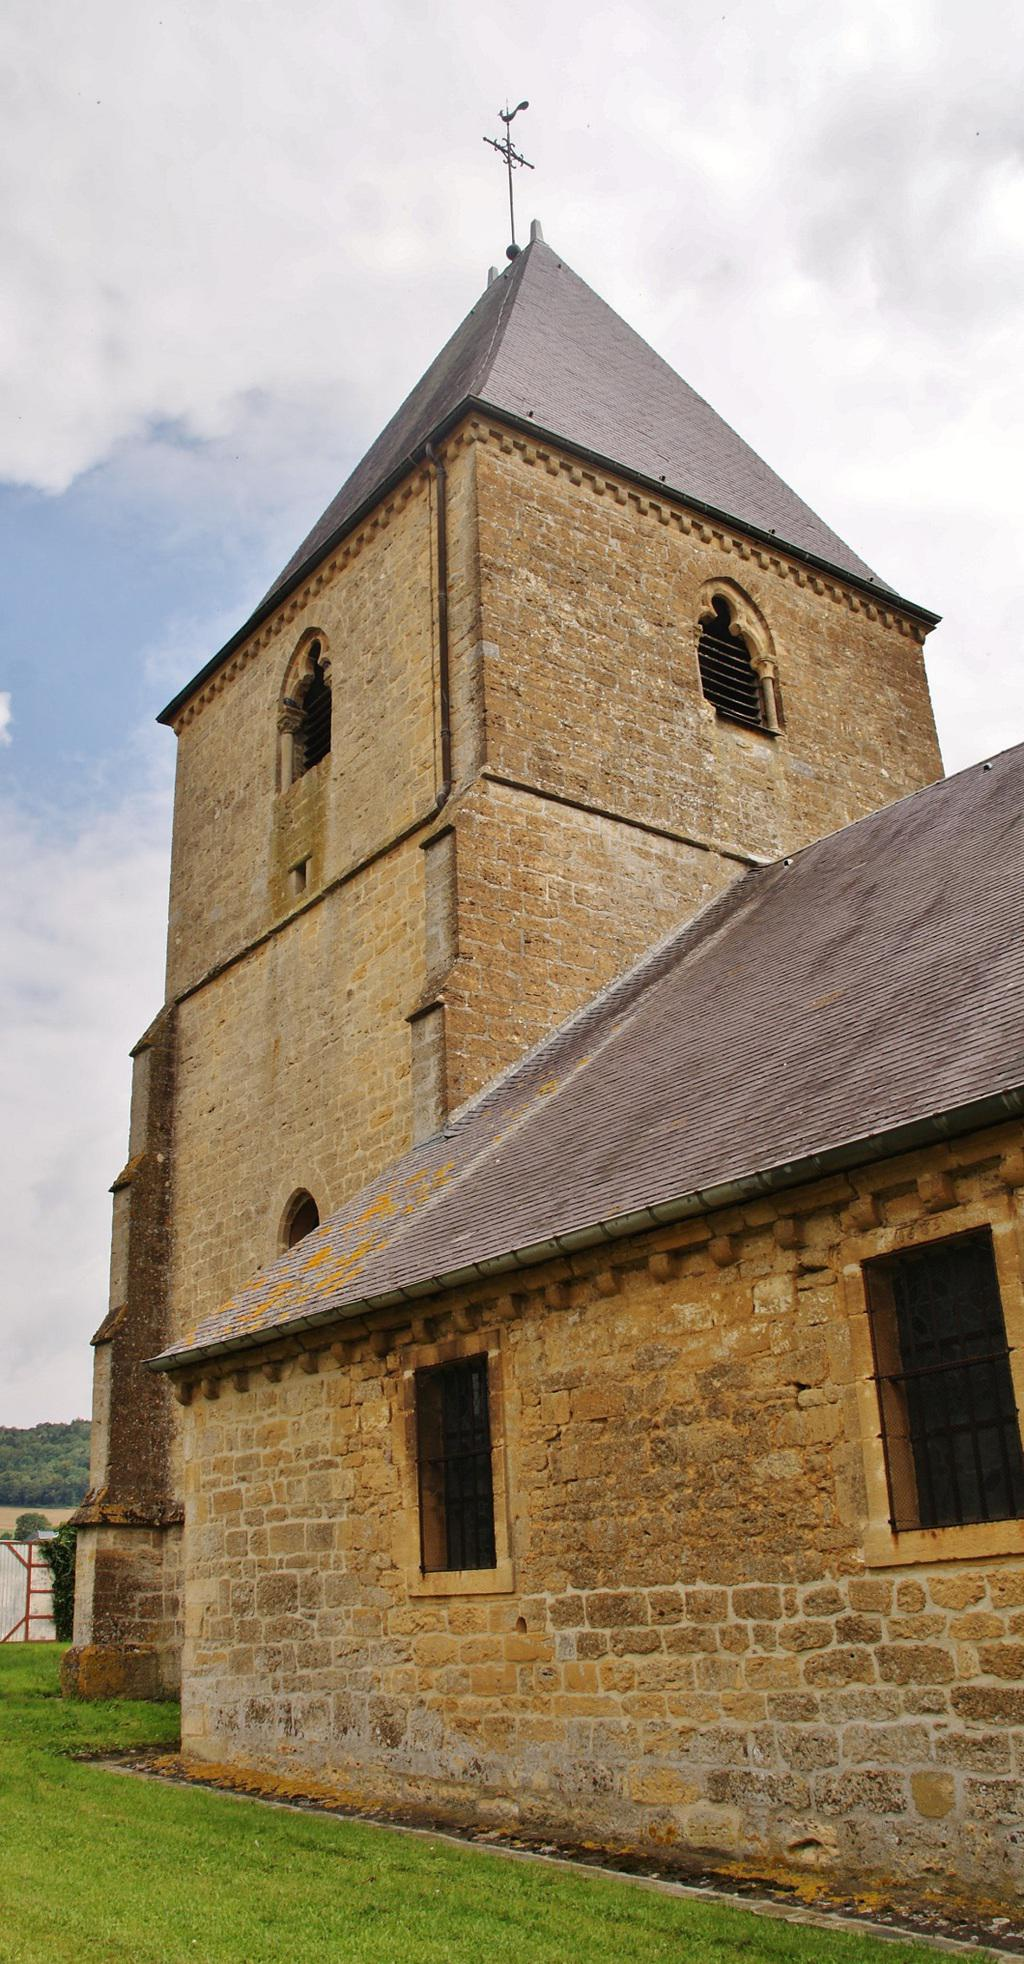 Eglise à Cheveuges.